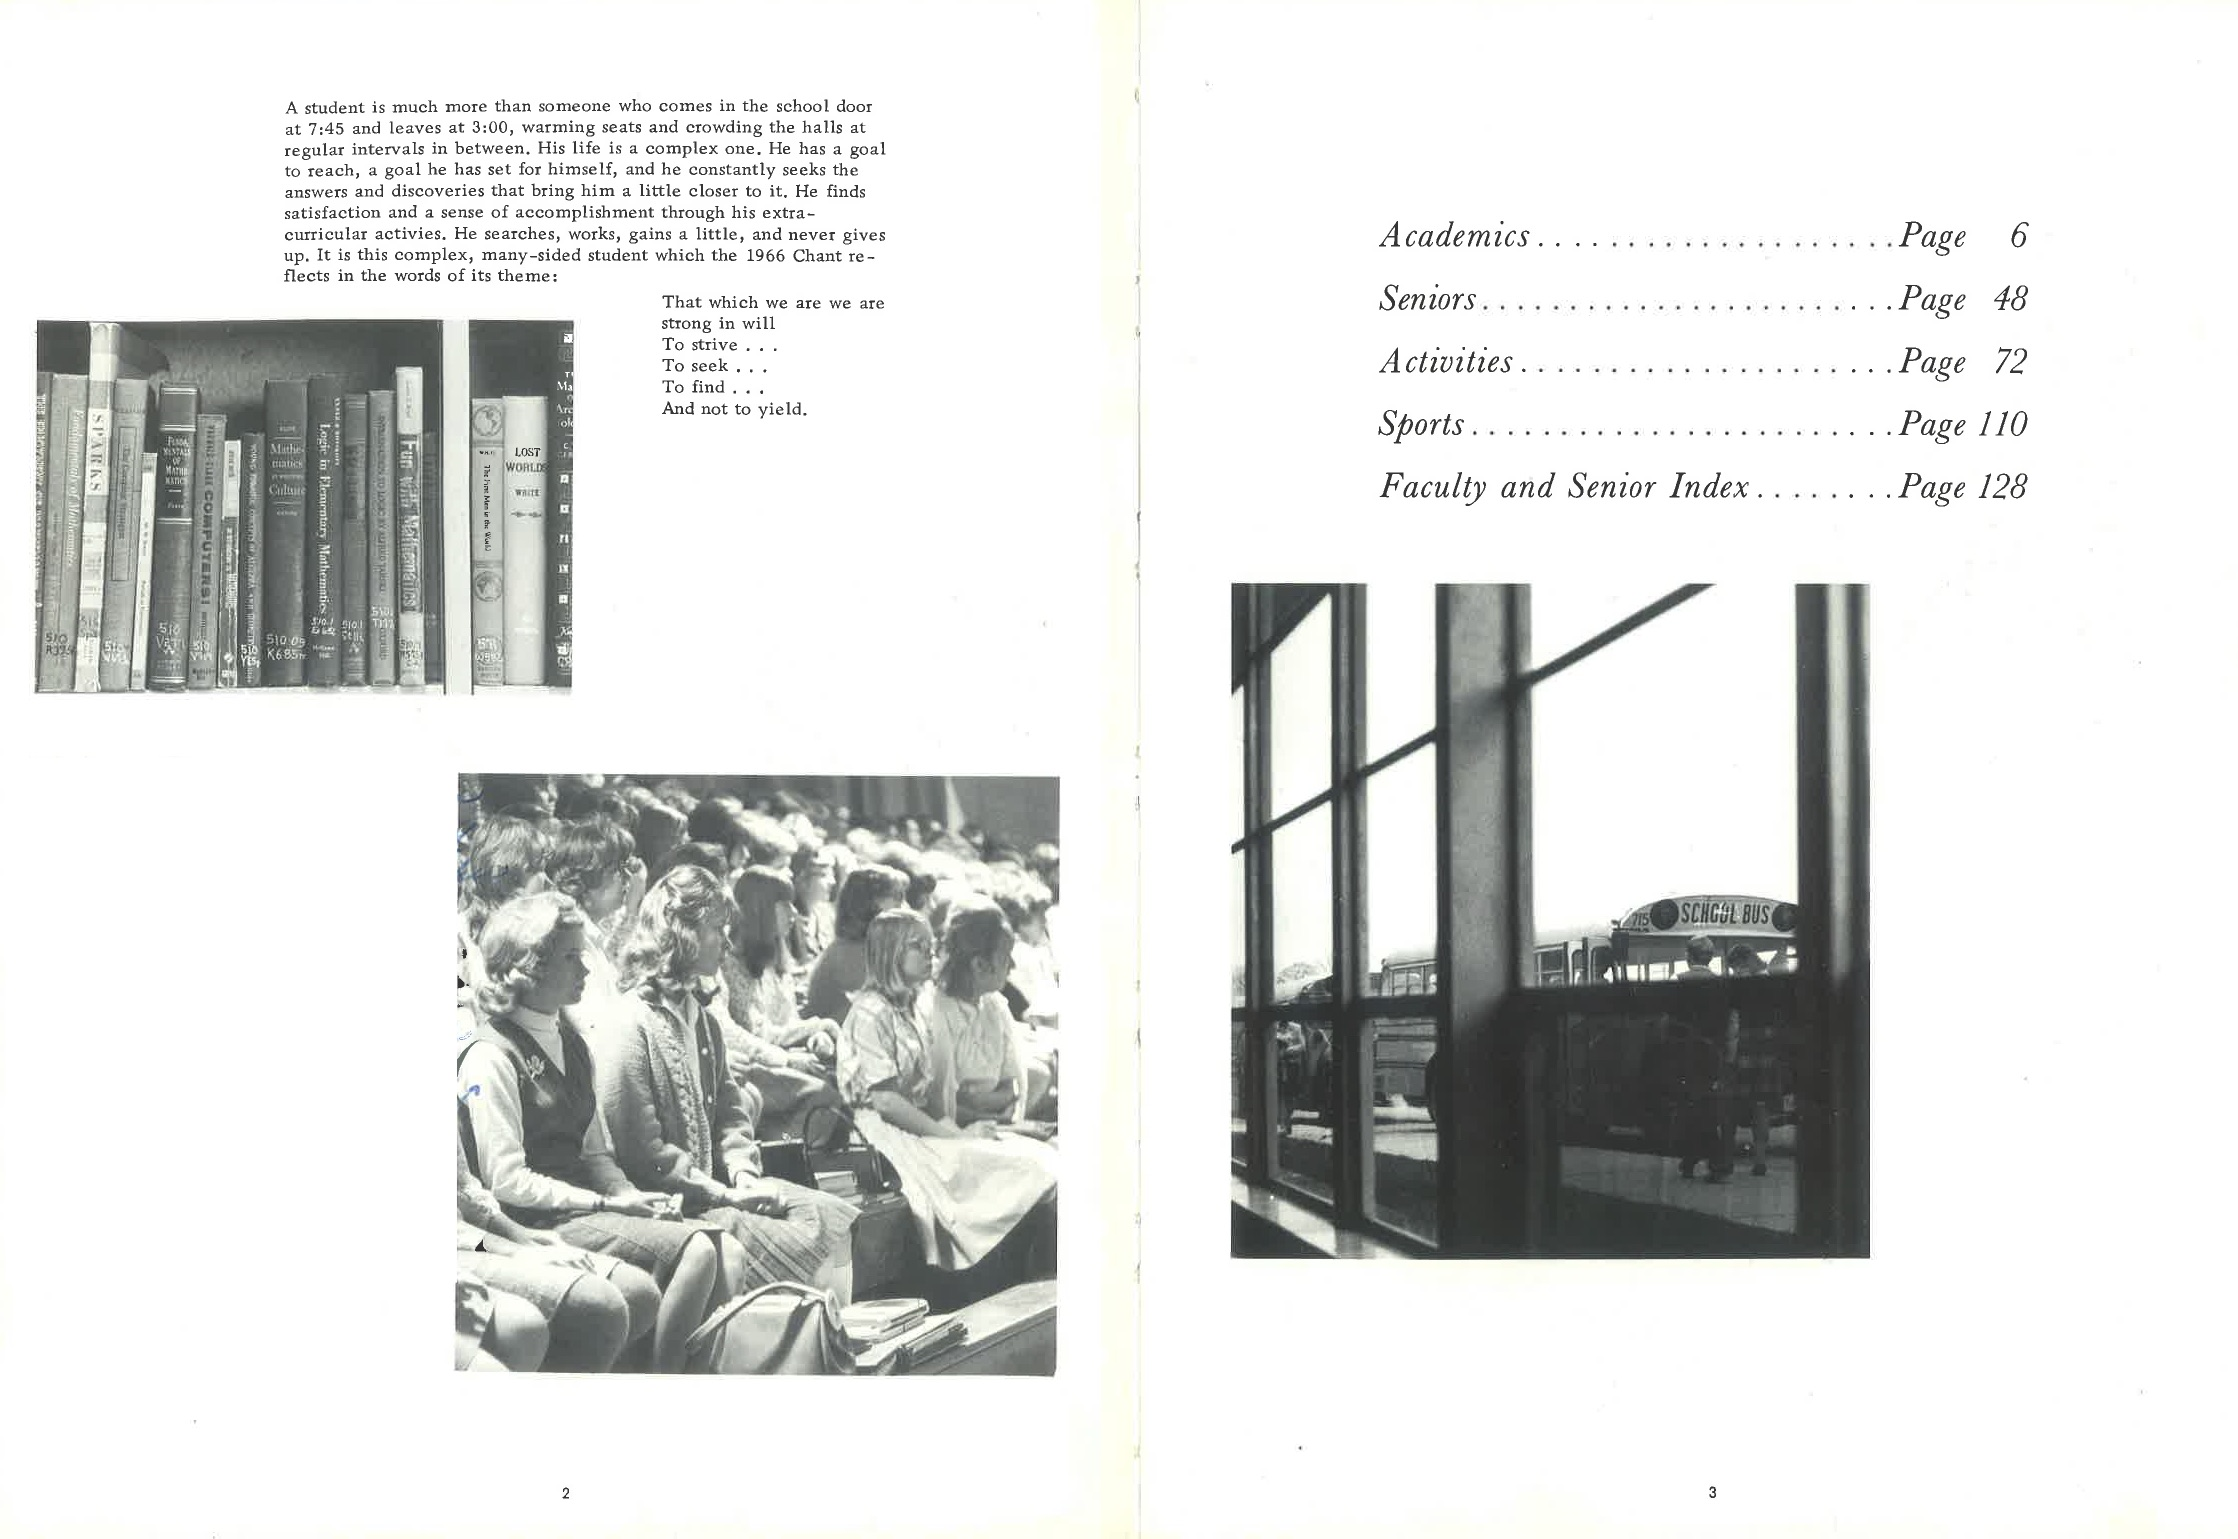 1966_Yearbook_2.jpg